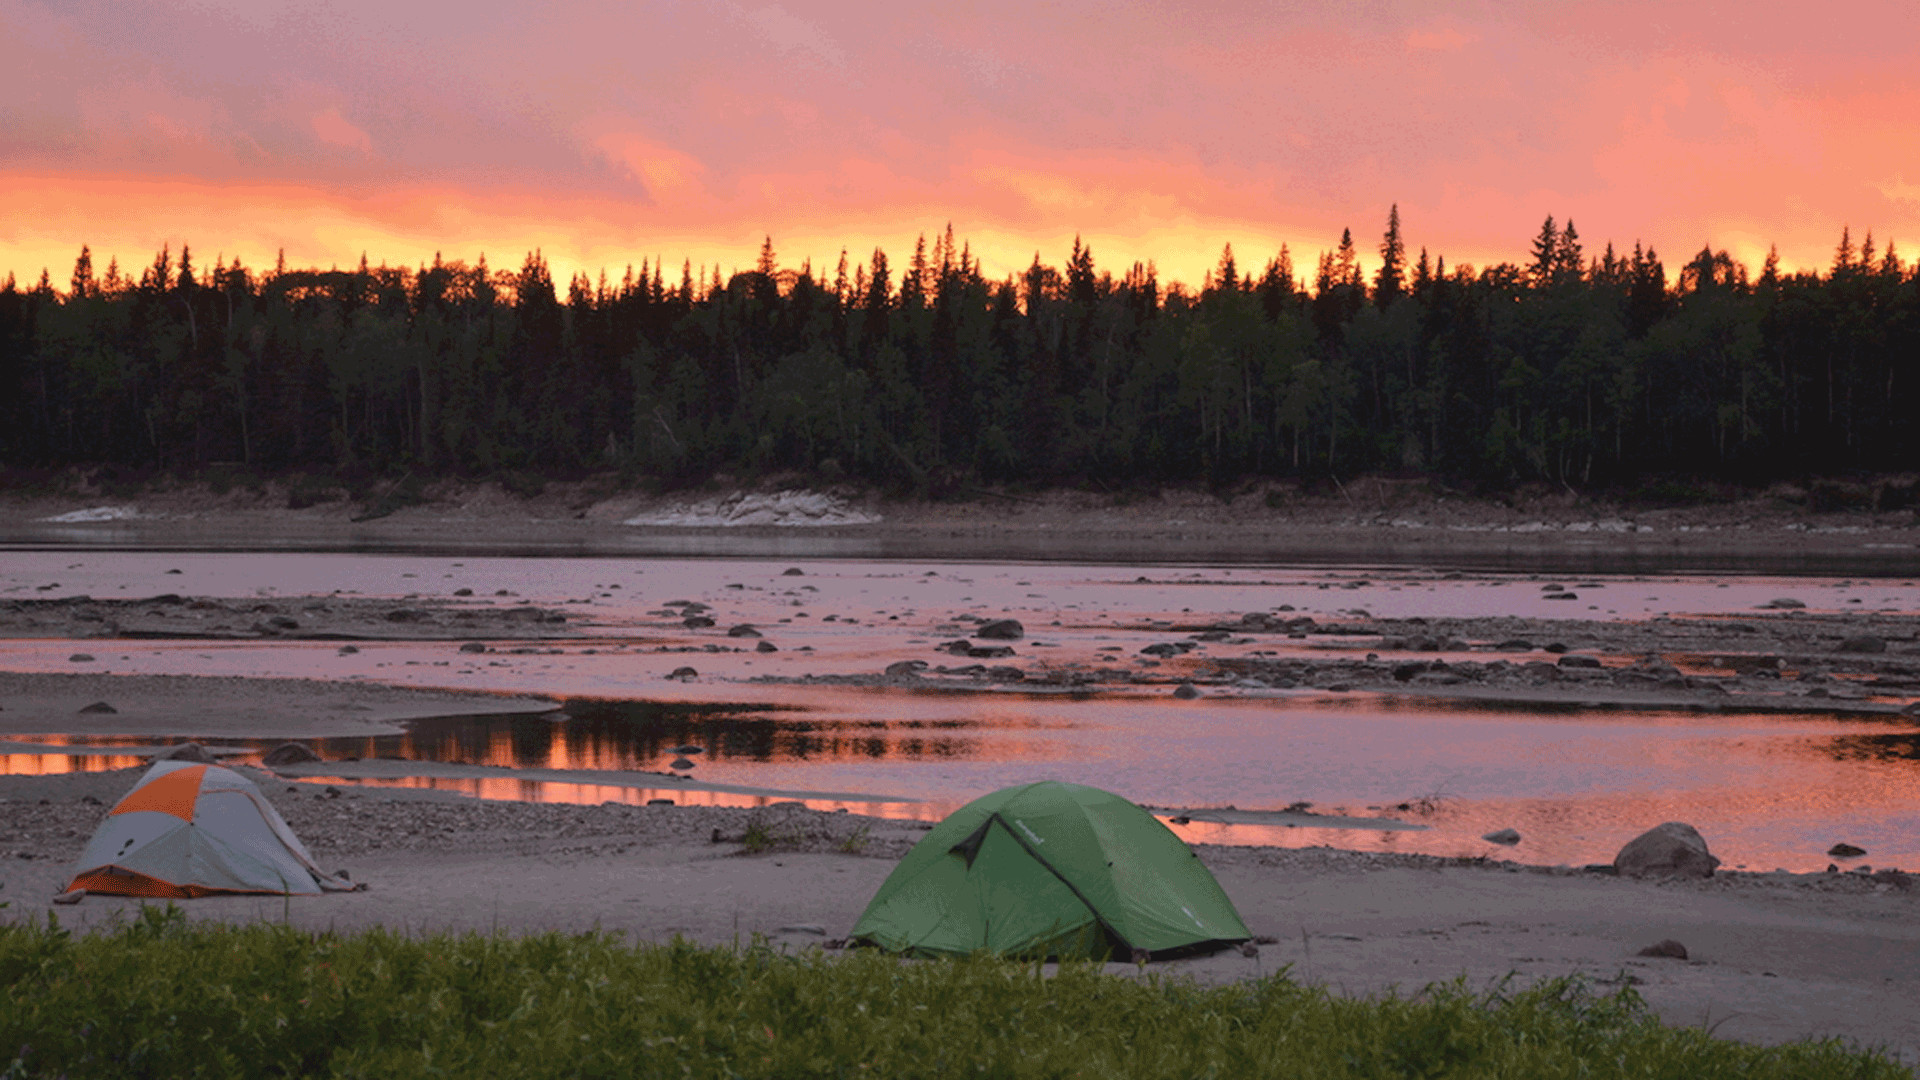 Sunset at the gravel bar campsite on the Lower Missinaibi River